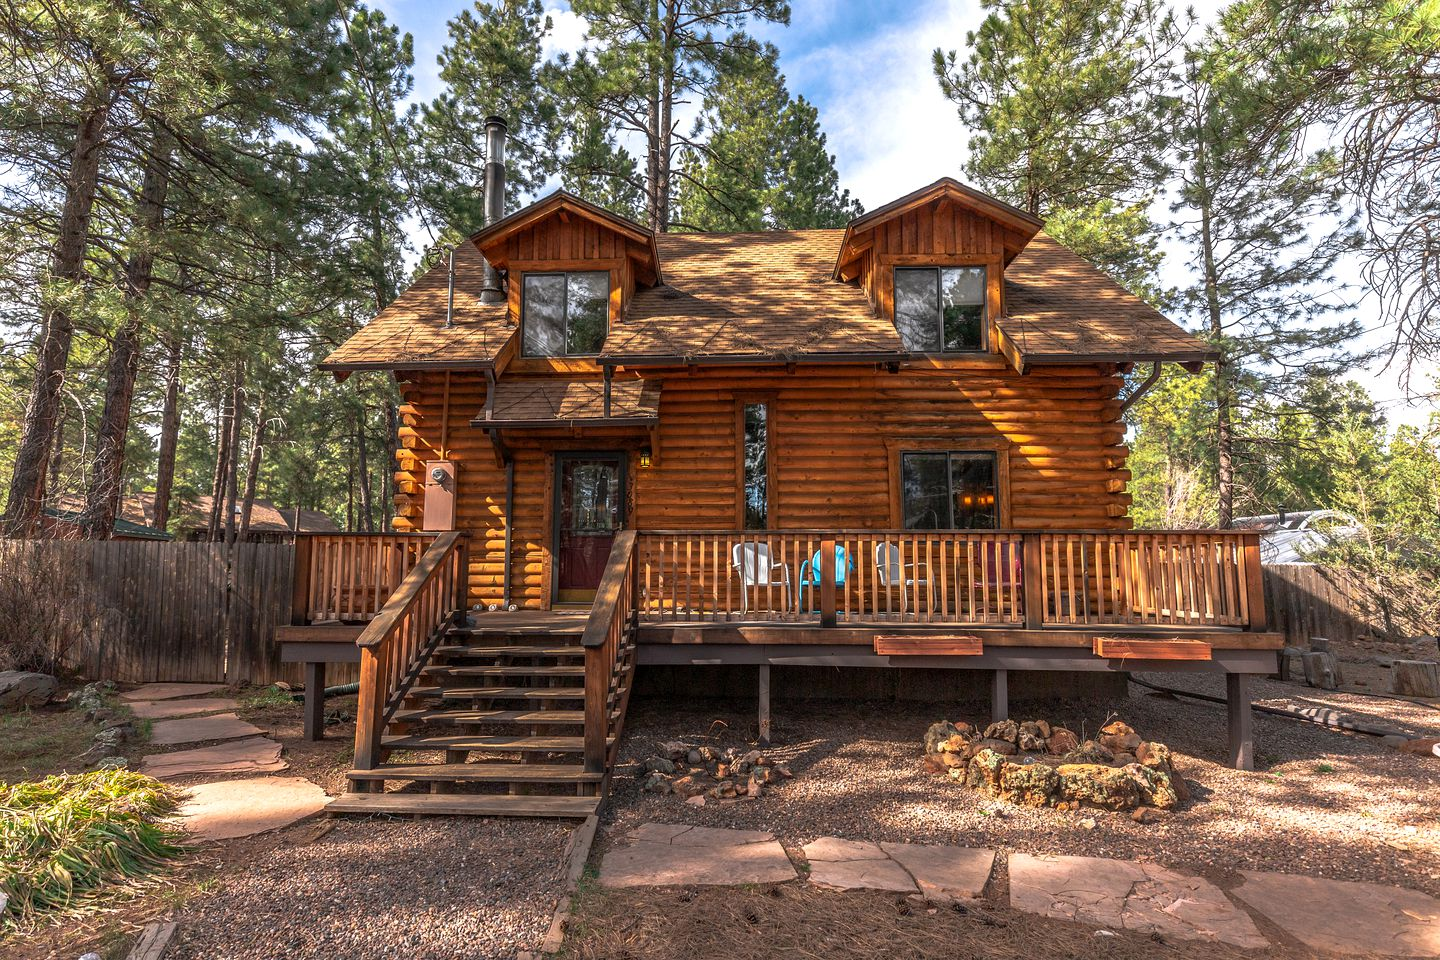 Log Cabins (Flagstaff, Arizona, United States)